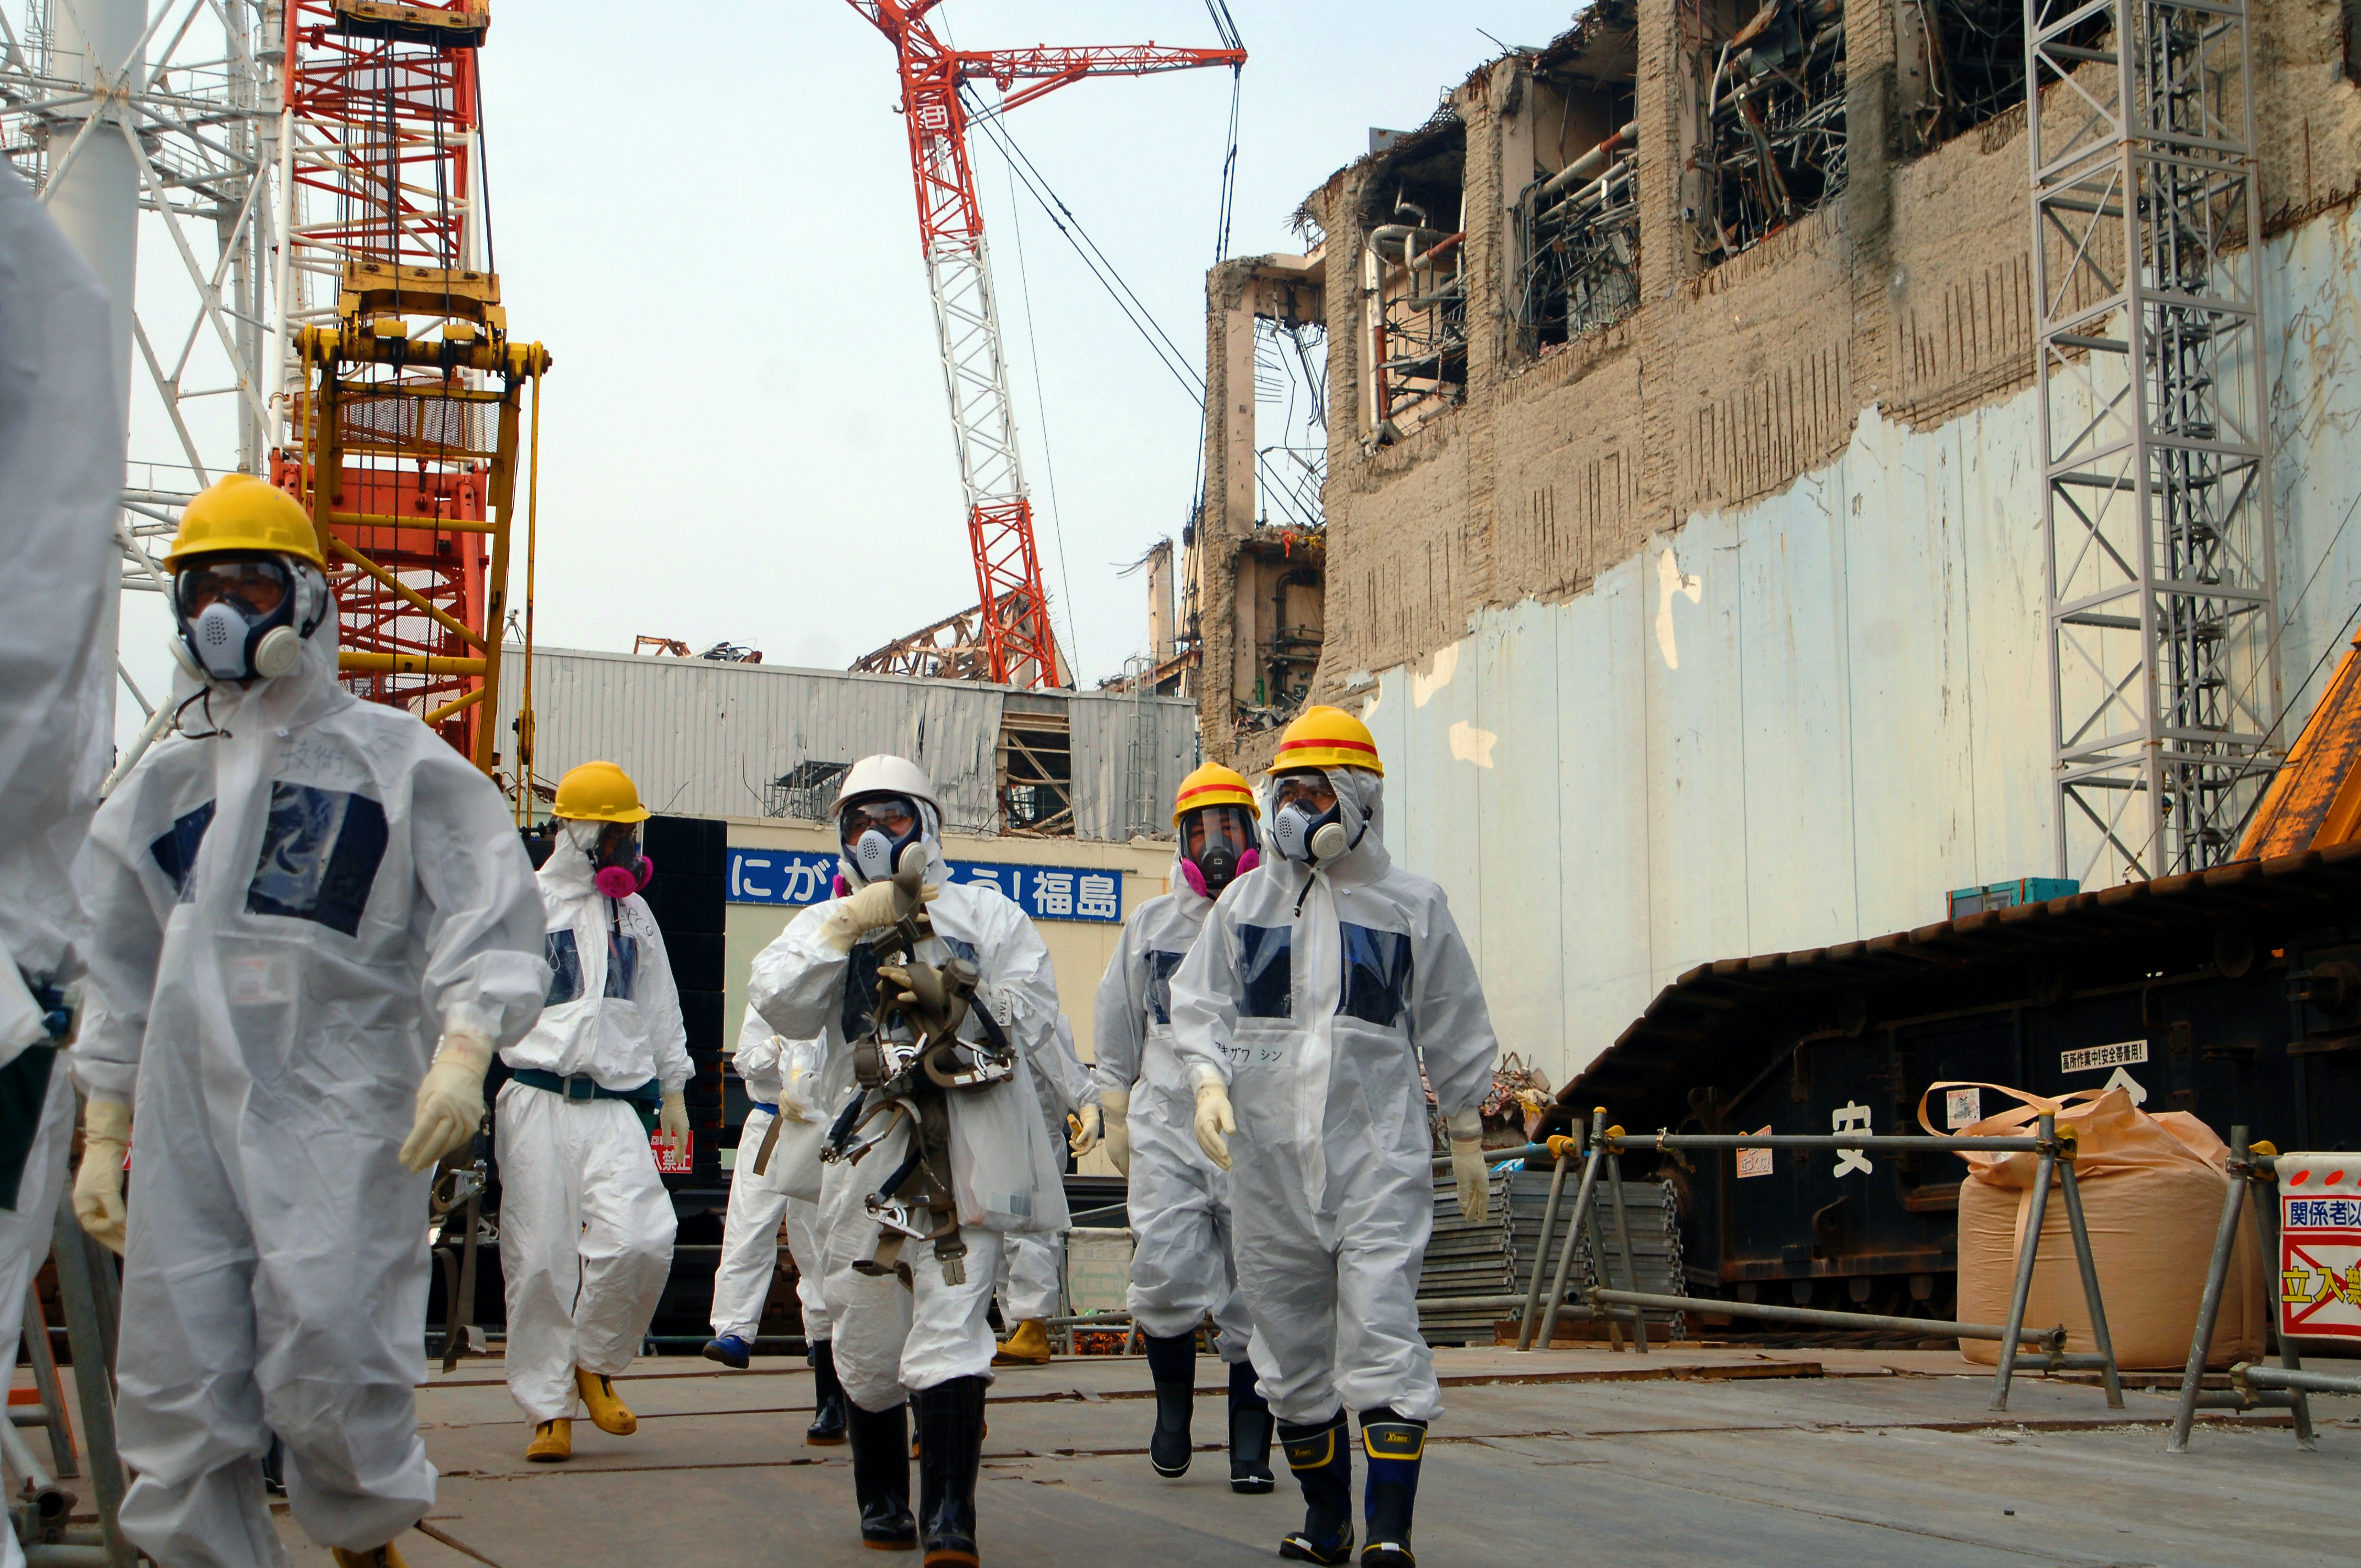 The Role of Robotics for Nuclear Remediation